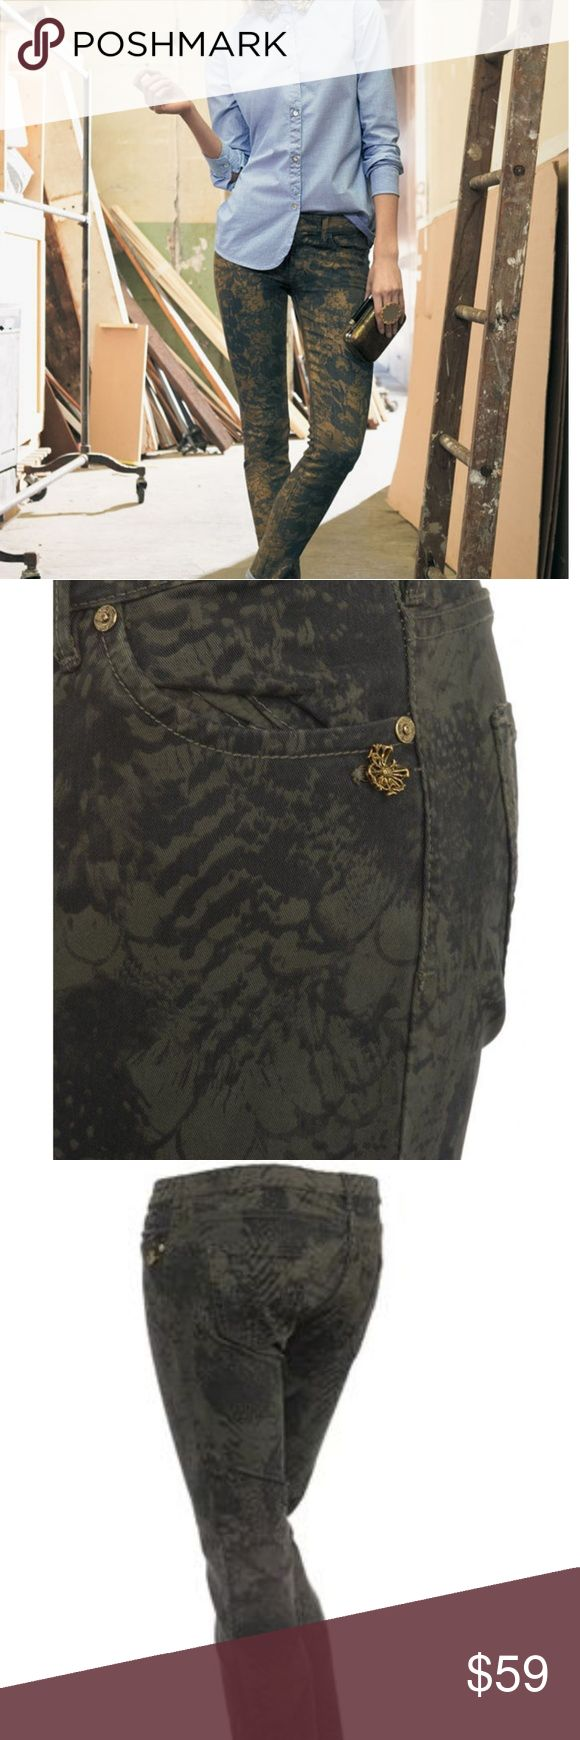 Maison Scotch Olive Feather Print Skinny jeans Maison Scotch Feather Print Jeans in Black Olive. Skinny Fit. Fly features a zip fastening. Five pockets. Branded gold hardware. Ankle zip on back of jeans. Composition: 98% cotton, 2% elastane. Flawless. True to size. maison scotch Jeans Skinny